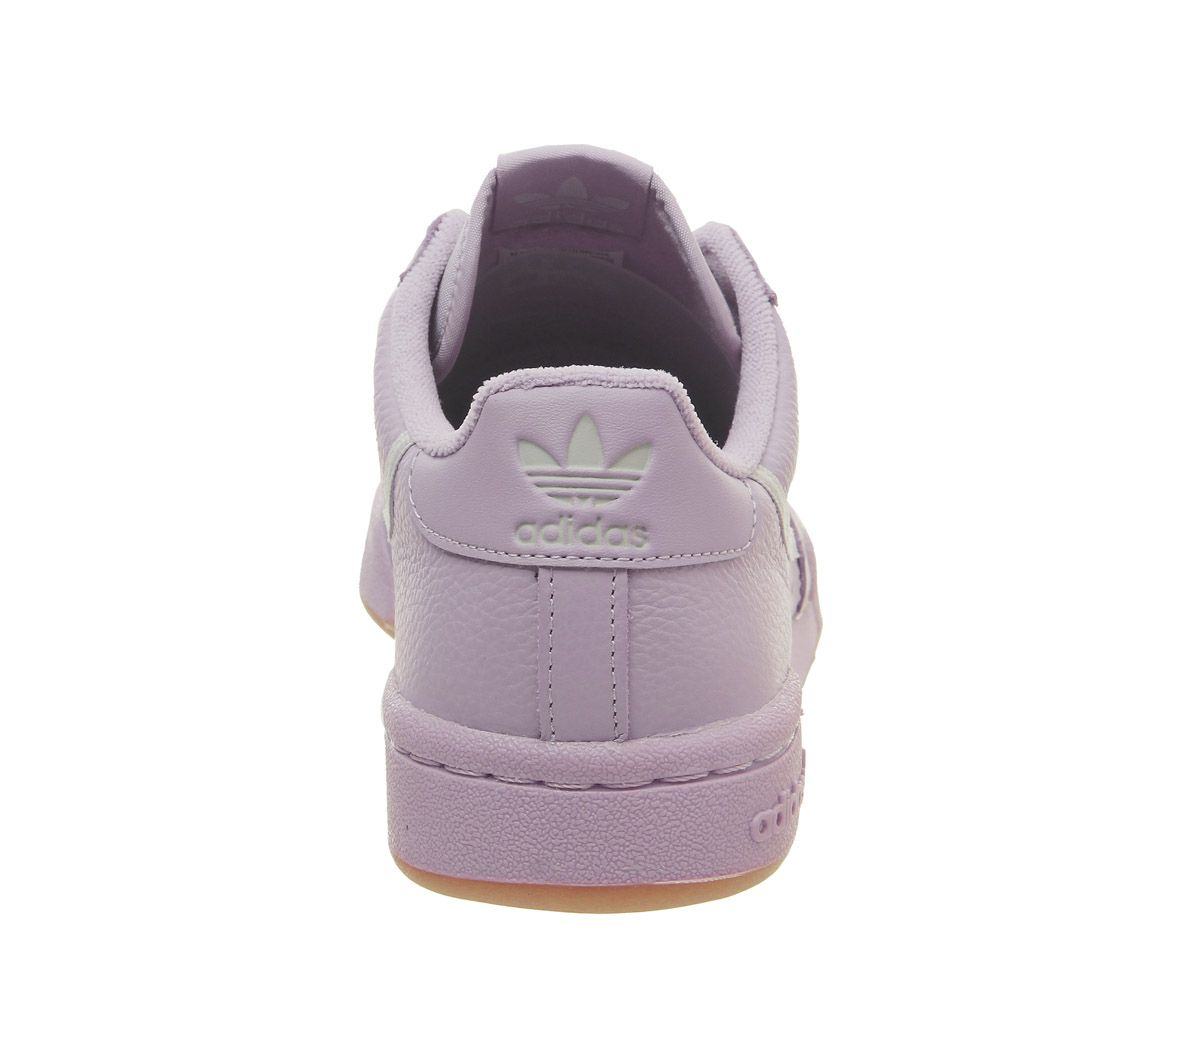 1ed203d8b9eb adidas 80s Continental Trainers Soft Vision Grey - Hers trainers